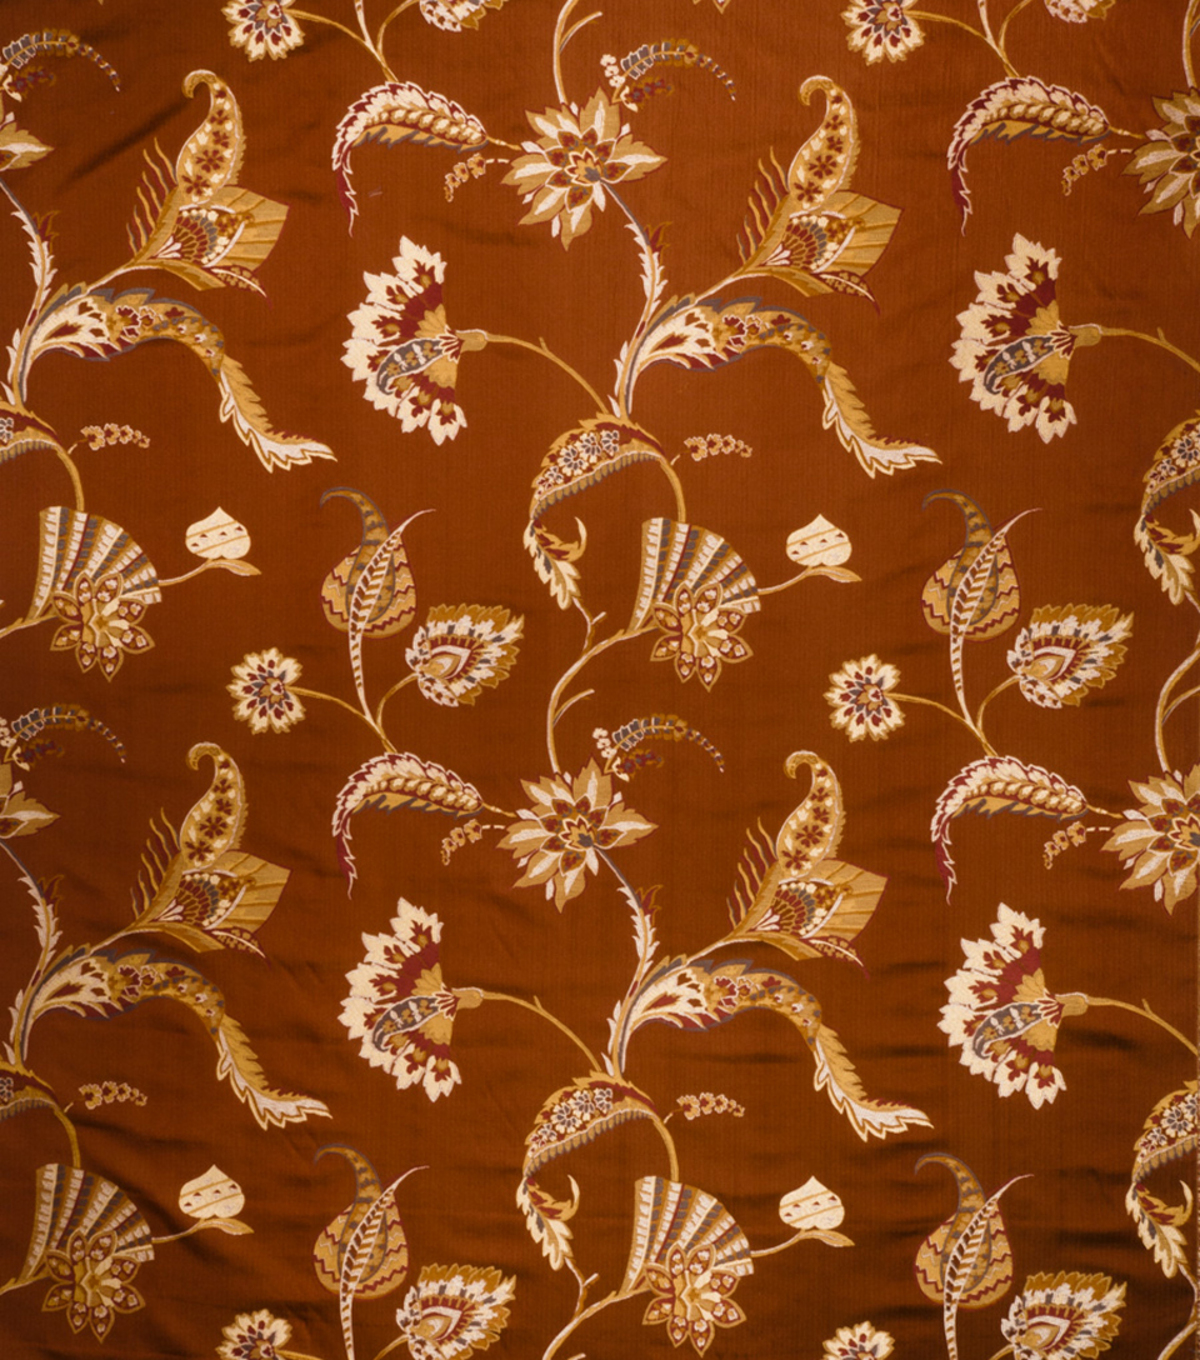 Home Decor 8\u0022x8\u0022 Fabric Swatch-Print Fabric Eaton Square Spellbound Cinnamon